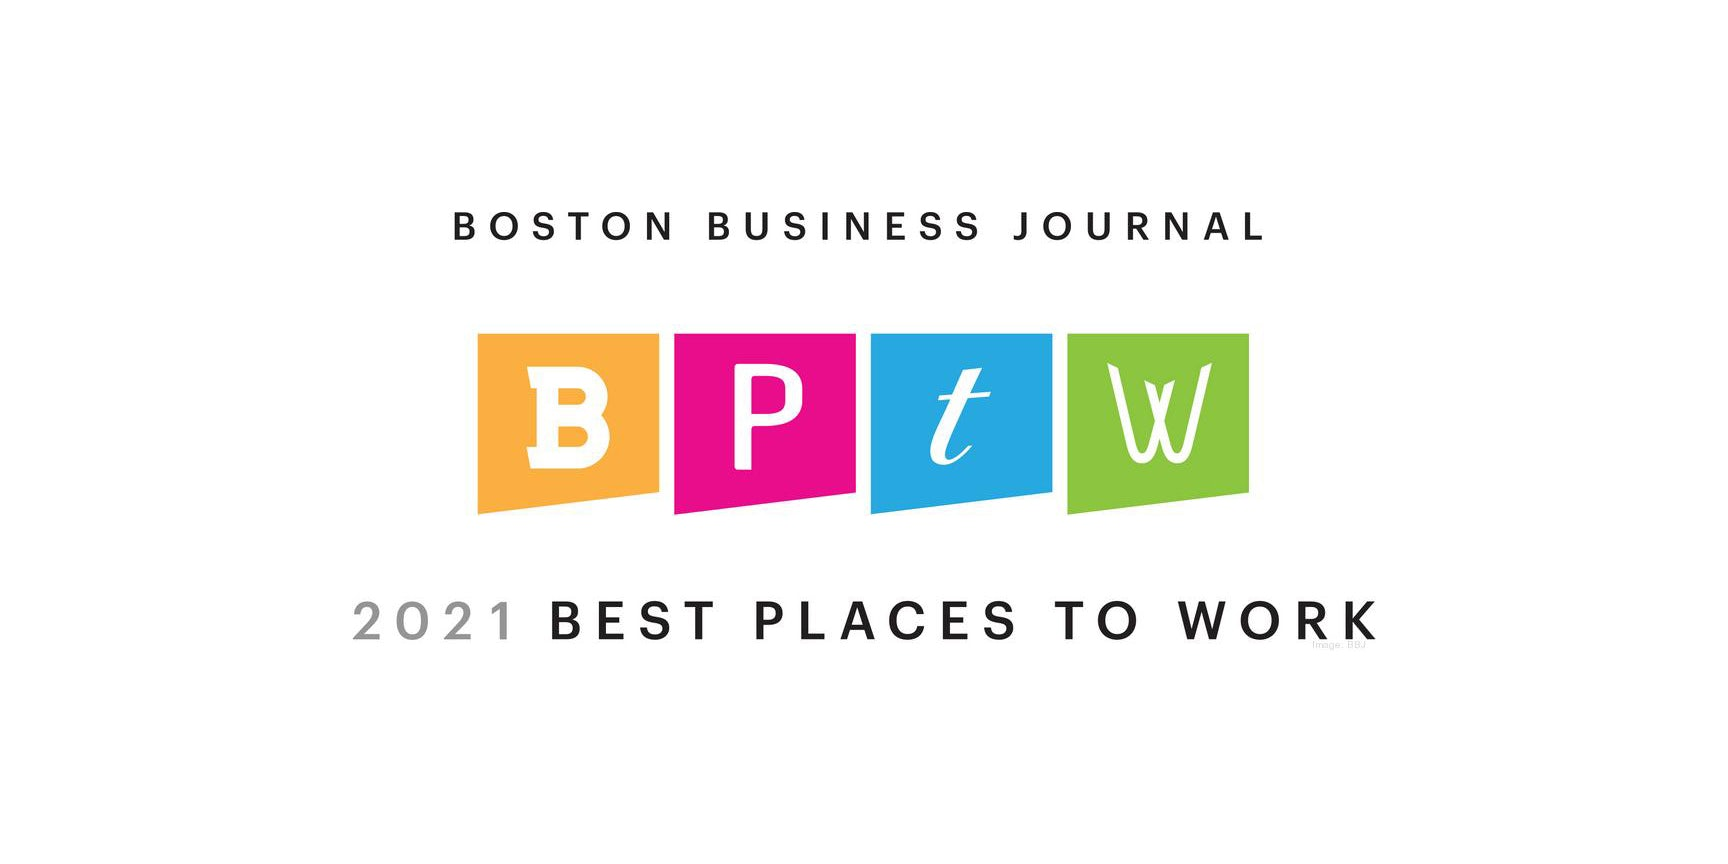 We're the #4 BBJ Best Place to Work in 2021!